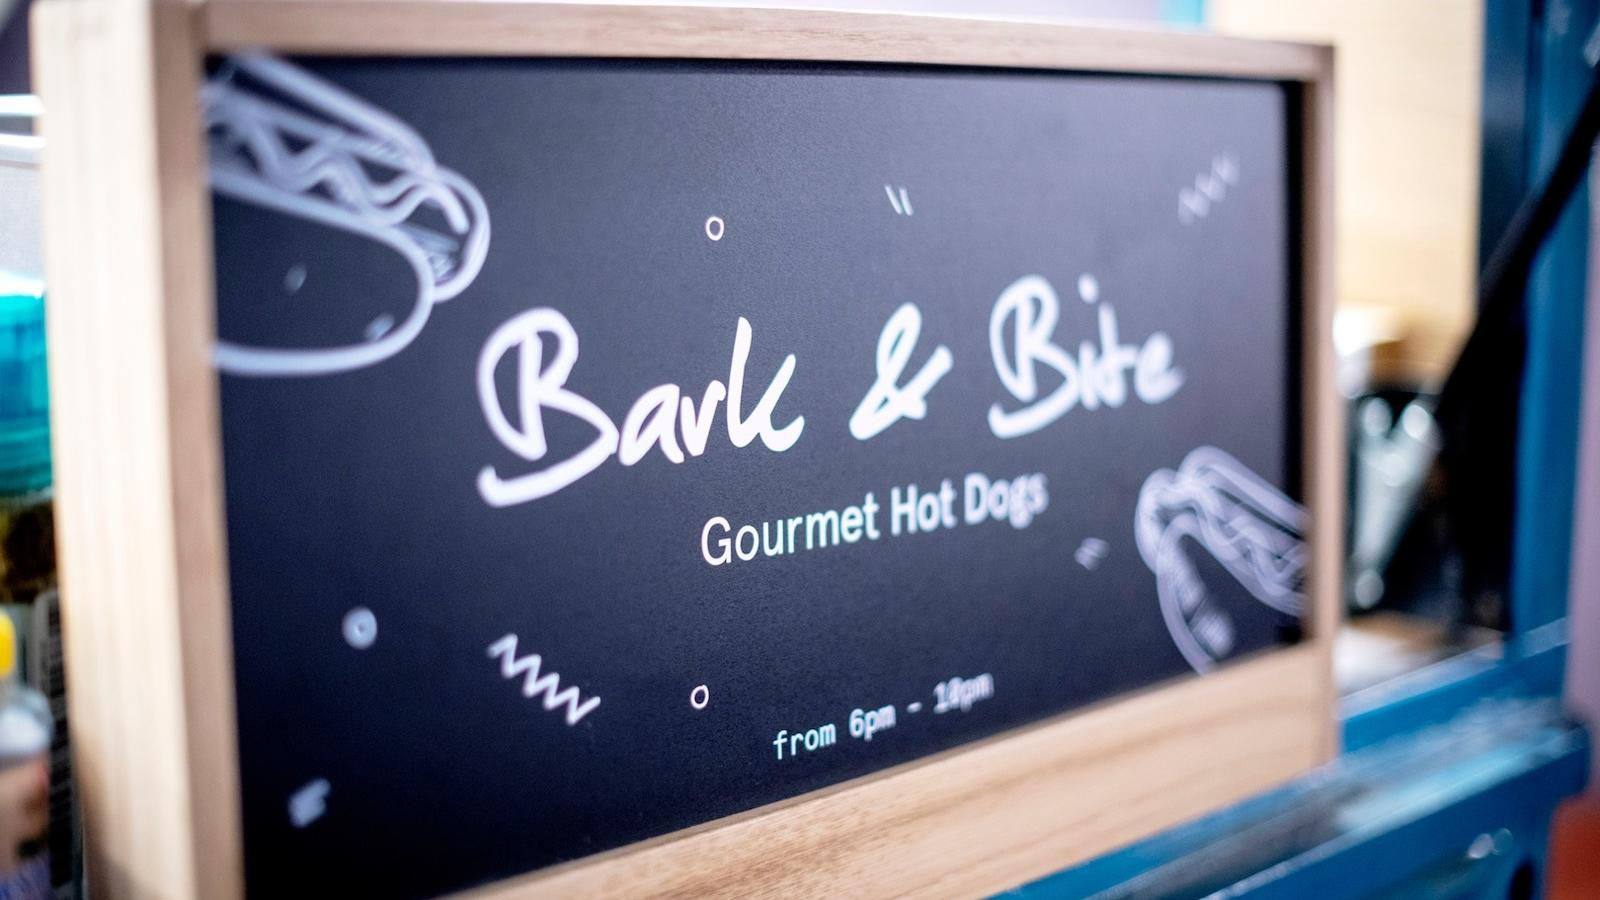 Bark & Bite food truck at Hotel Hubert Brussels near Grand Place